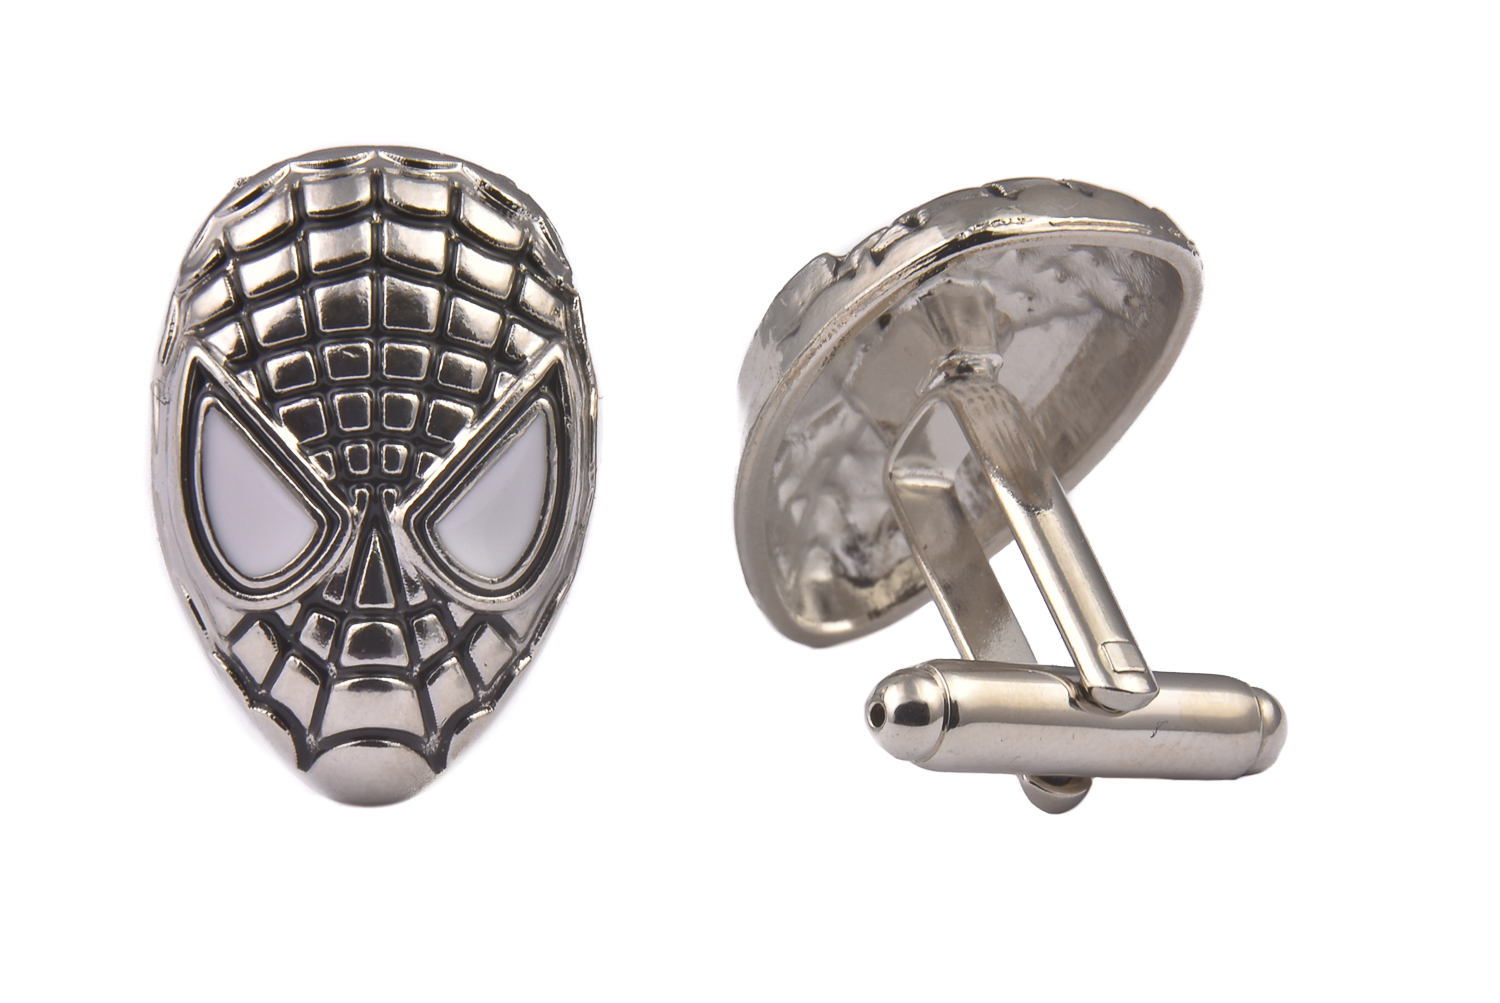 Spiderman Silver Cufflinks